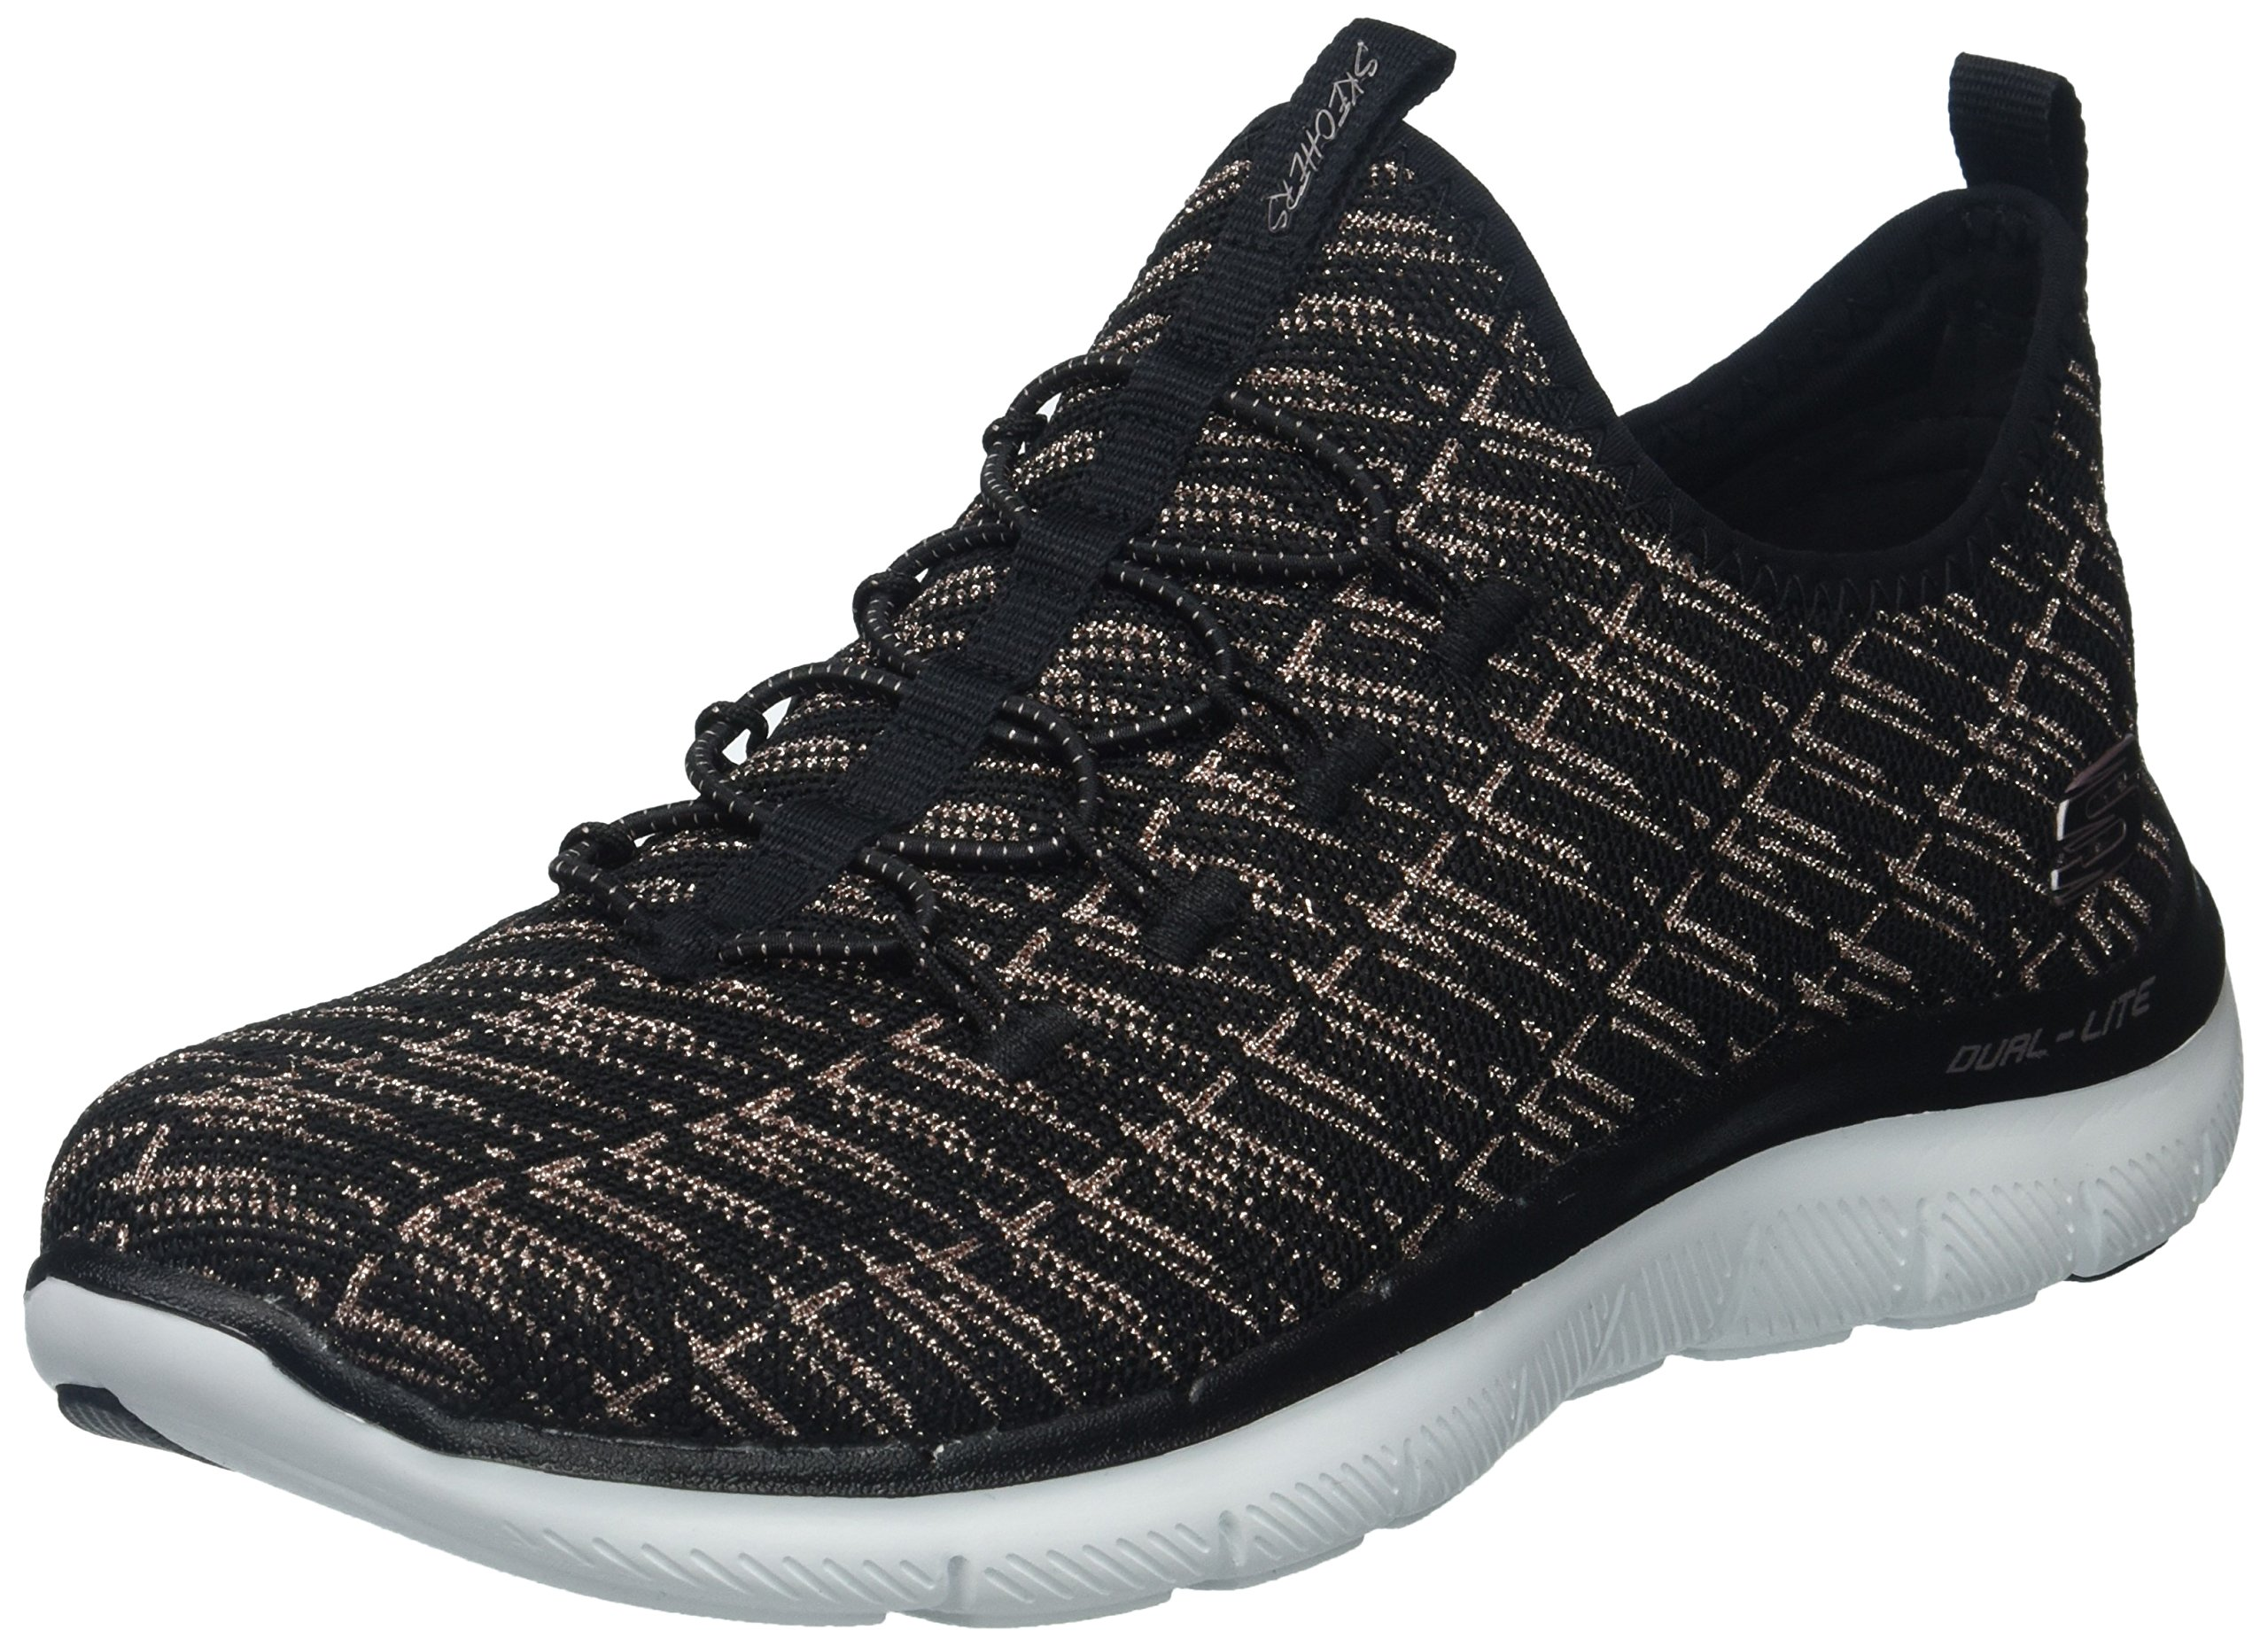 Skechers Sport Women's Flex Appeal 2.0 Insight Sneaker,black rose gold,8 M US